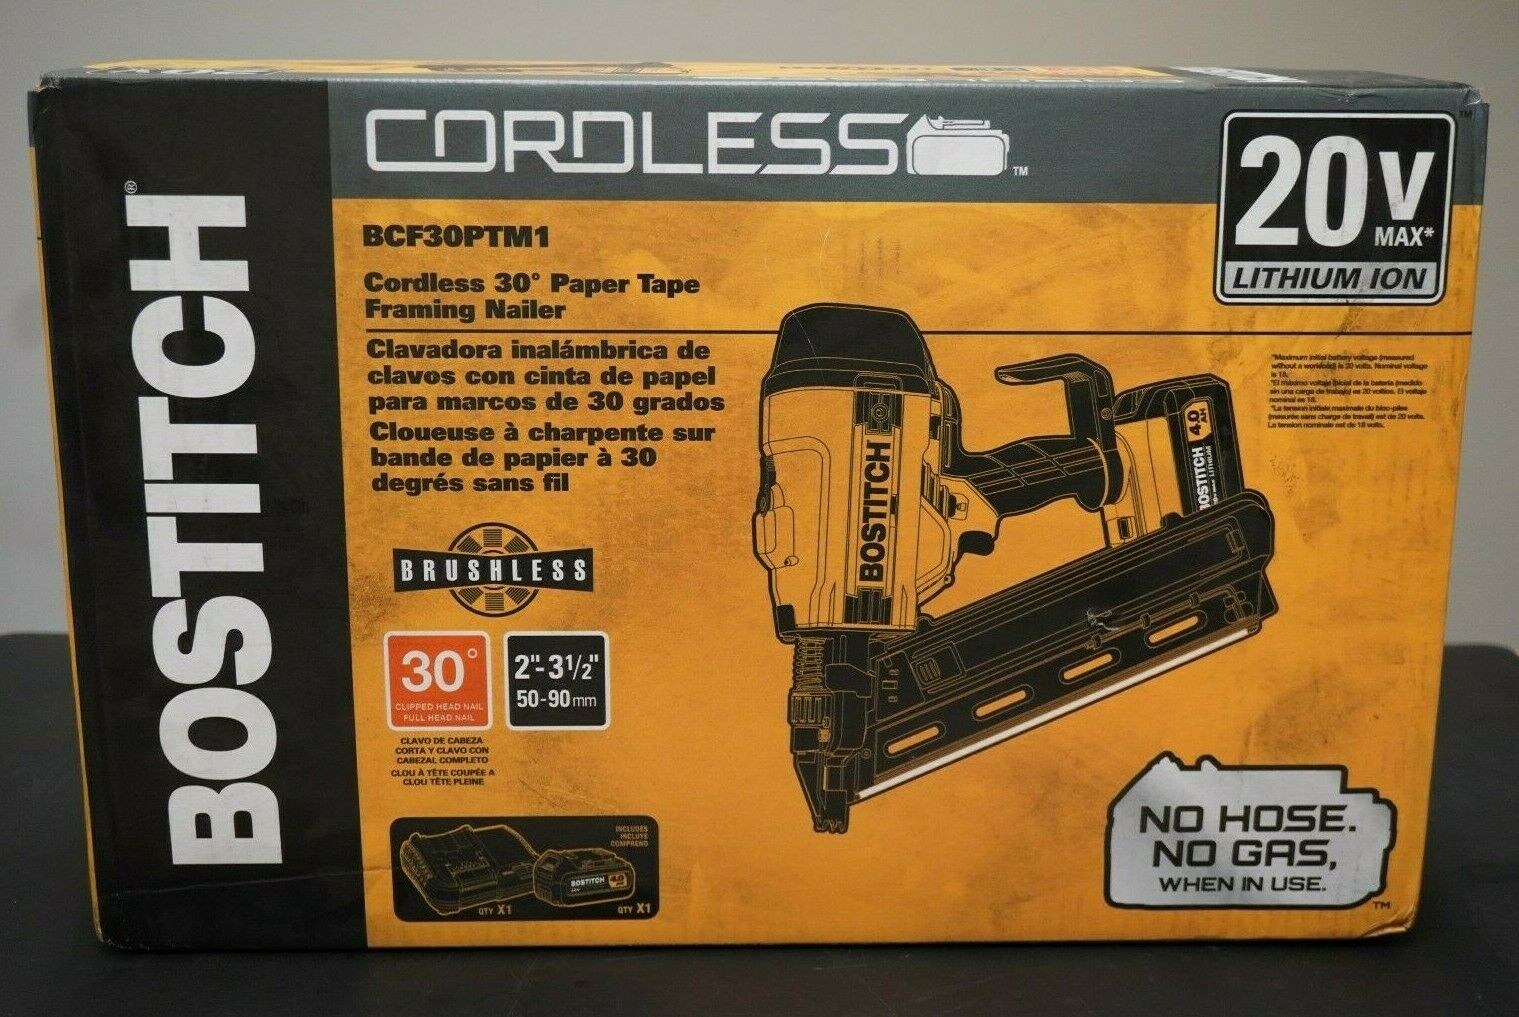 Bostitch 20V Max BCF30PTM1 Cordless 30 Degree Paper Tape Framing Nailer - A331. Buy it now for 299.97